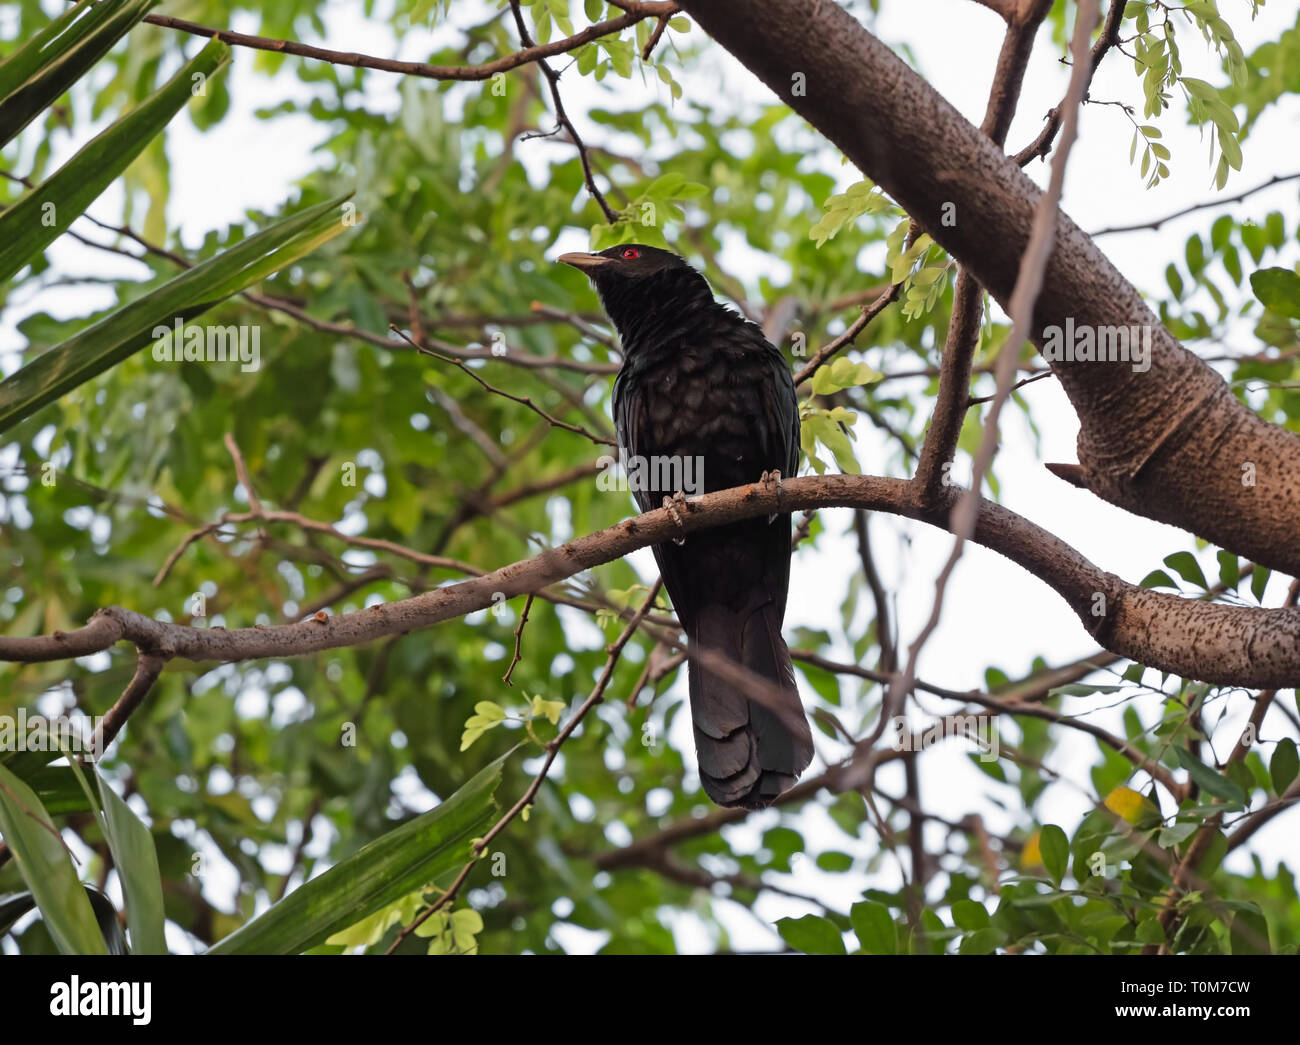 Closeup Male Asian Koel Bird Perched on Branch - Stock Image